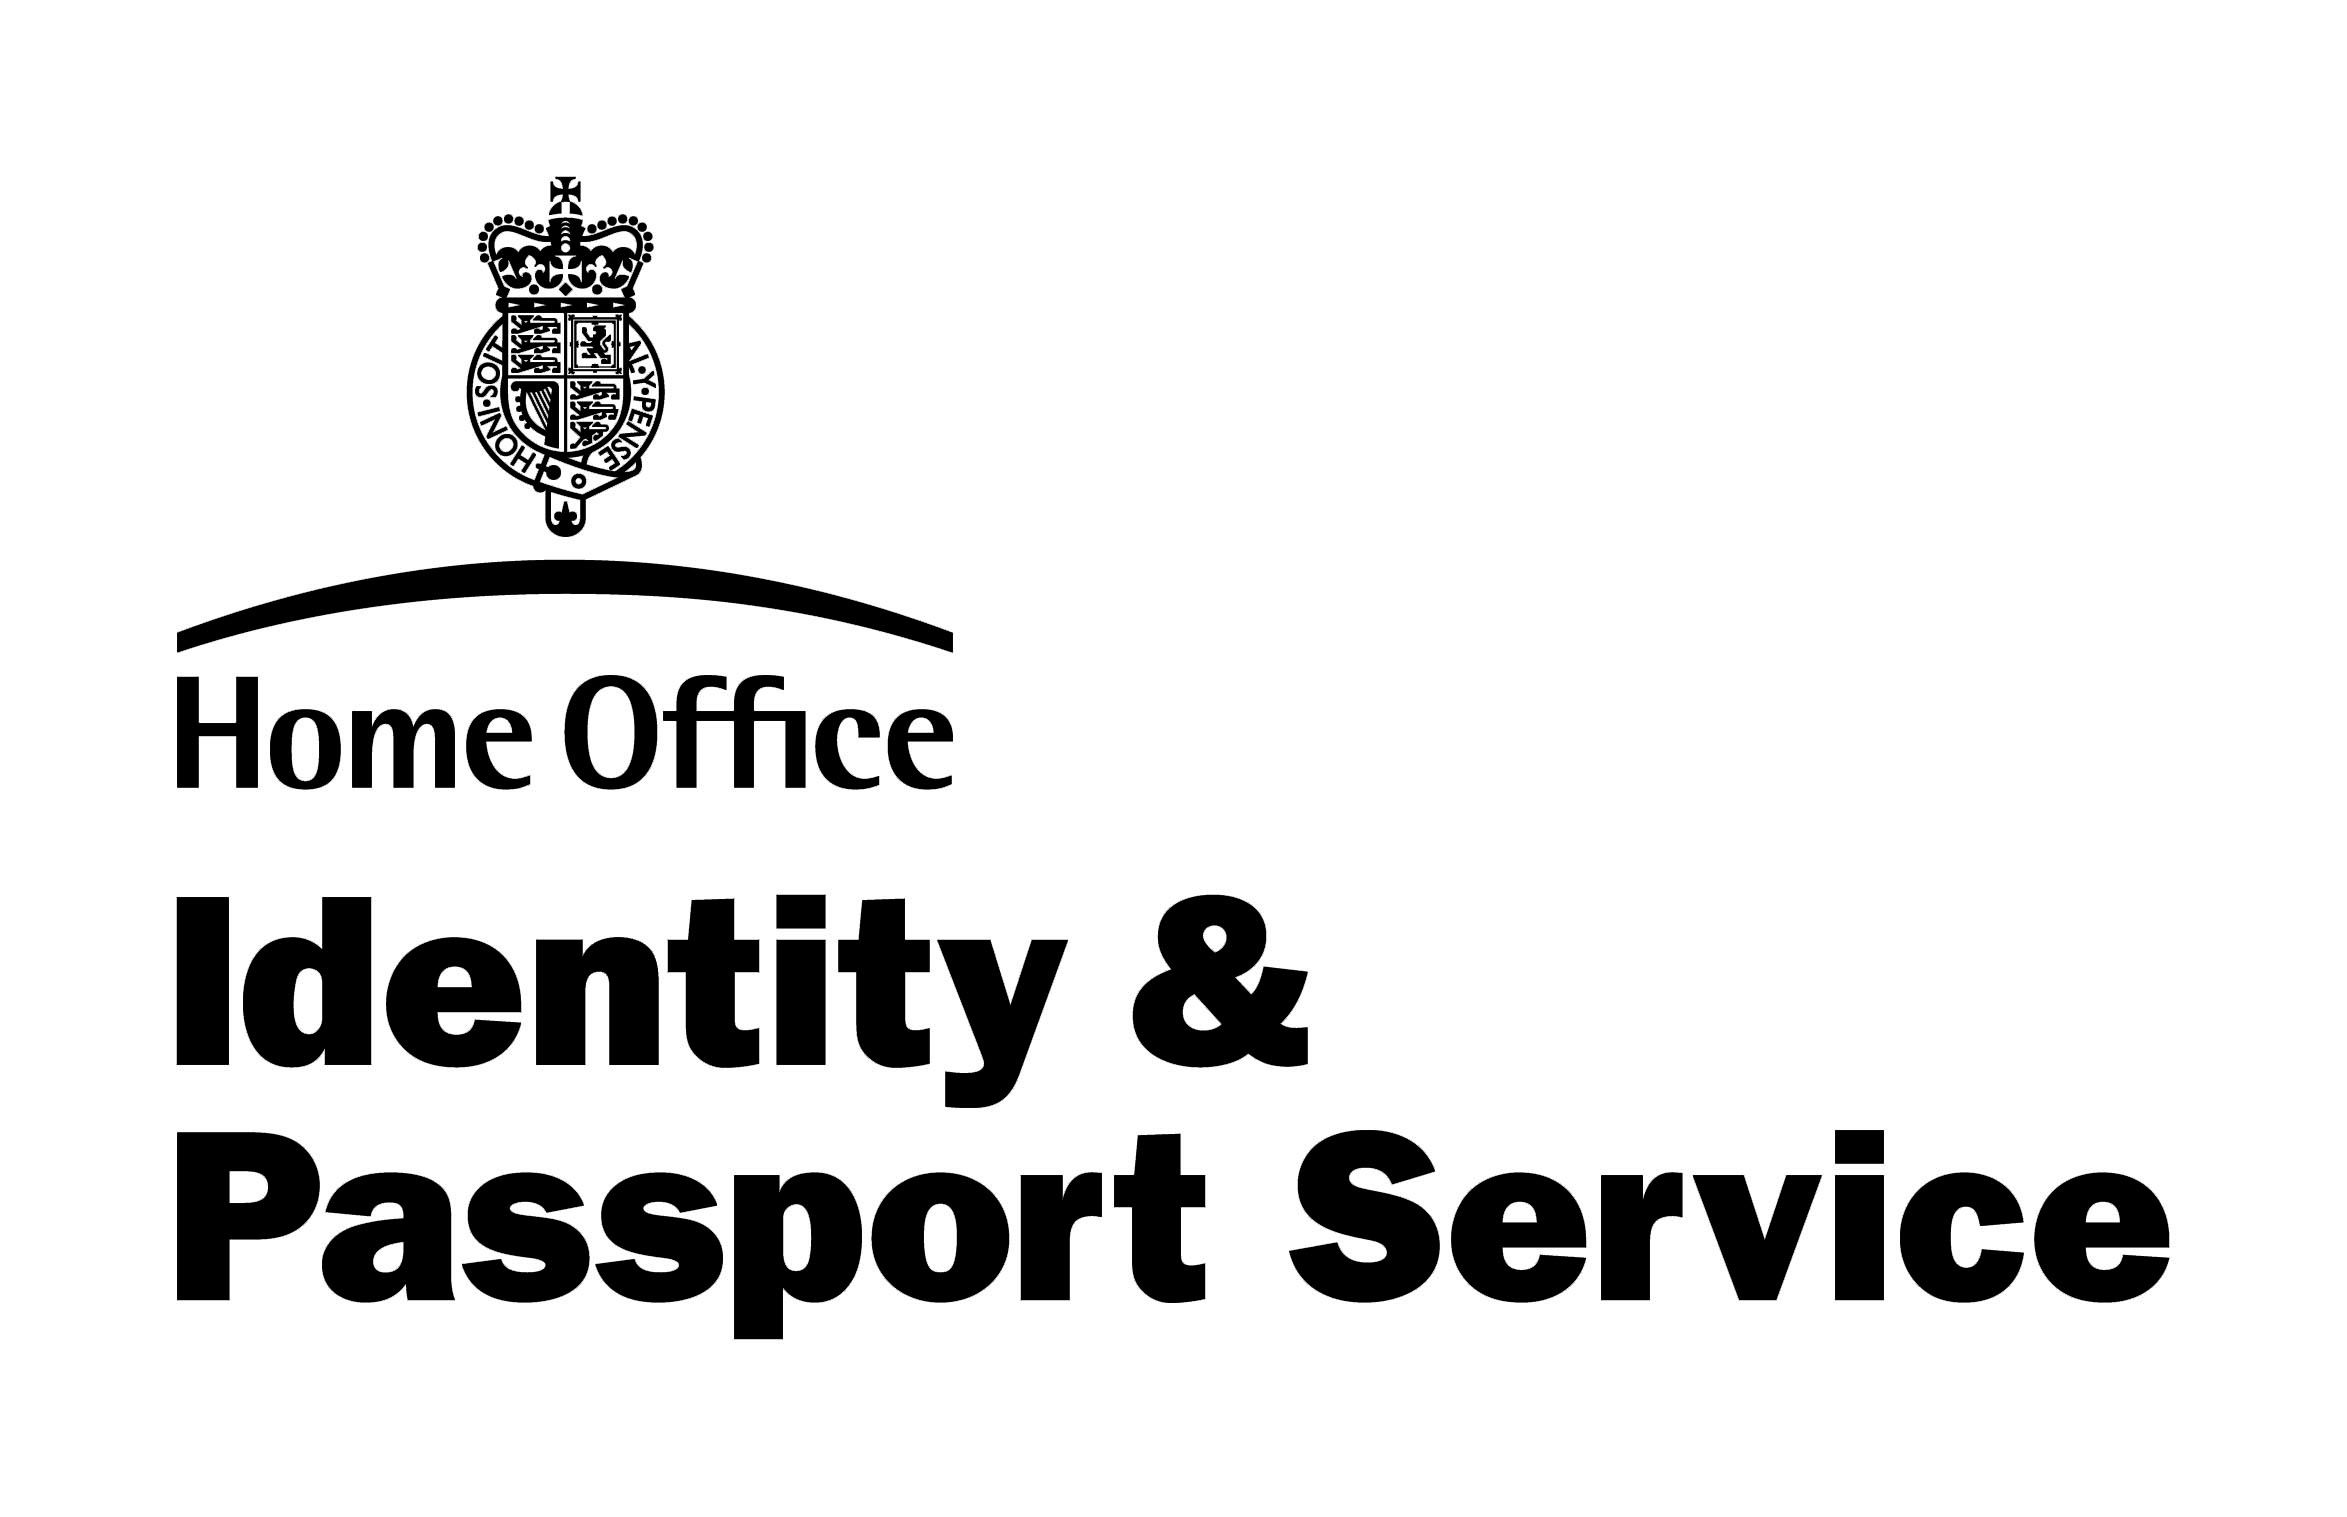 Disallowed characters in names of passports and ID cards - a